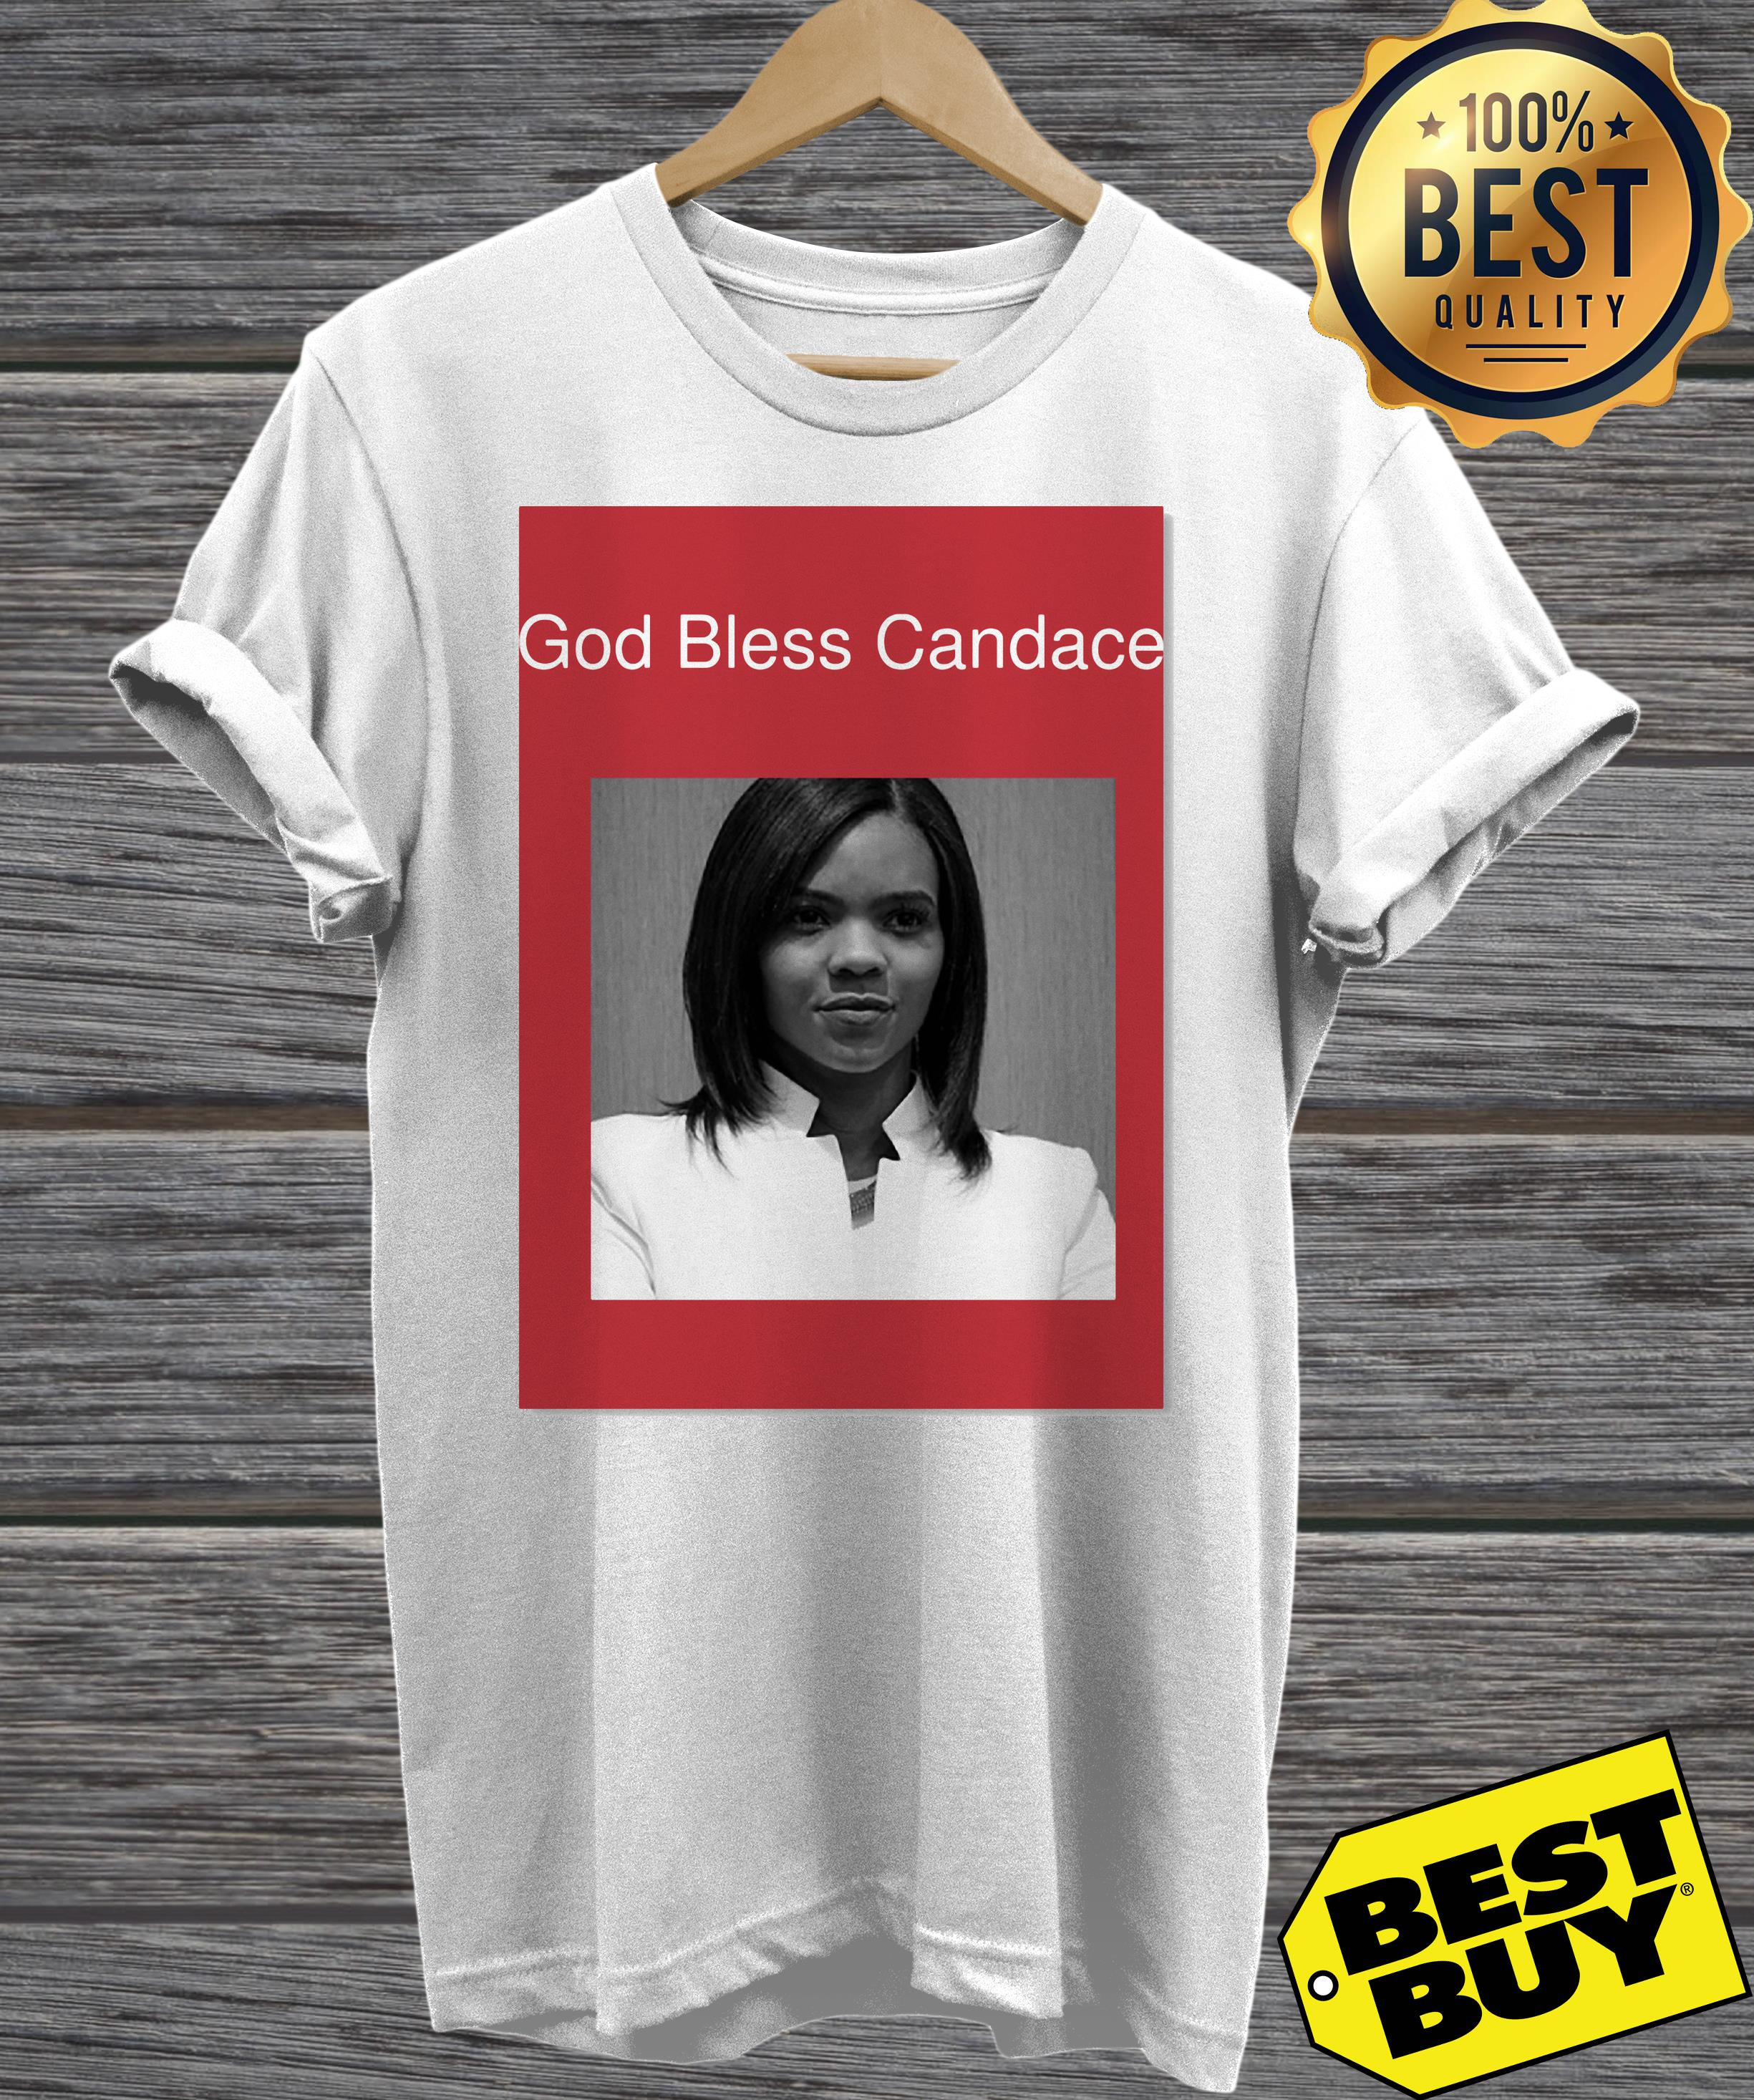 God bless Support Candace Owens sweatshirt